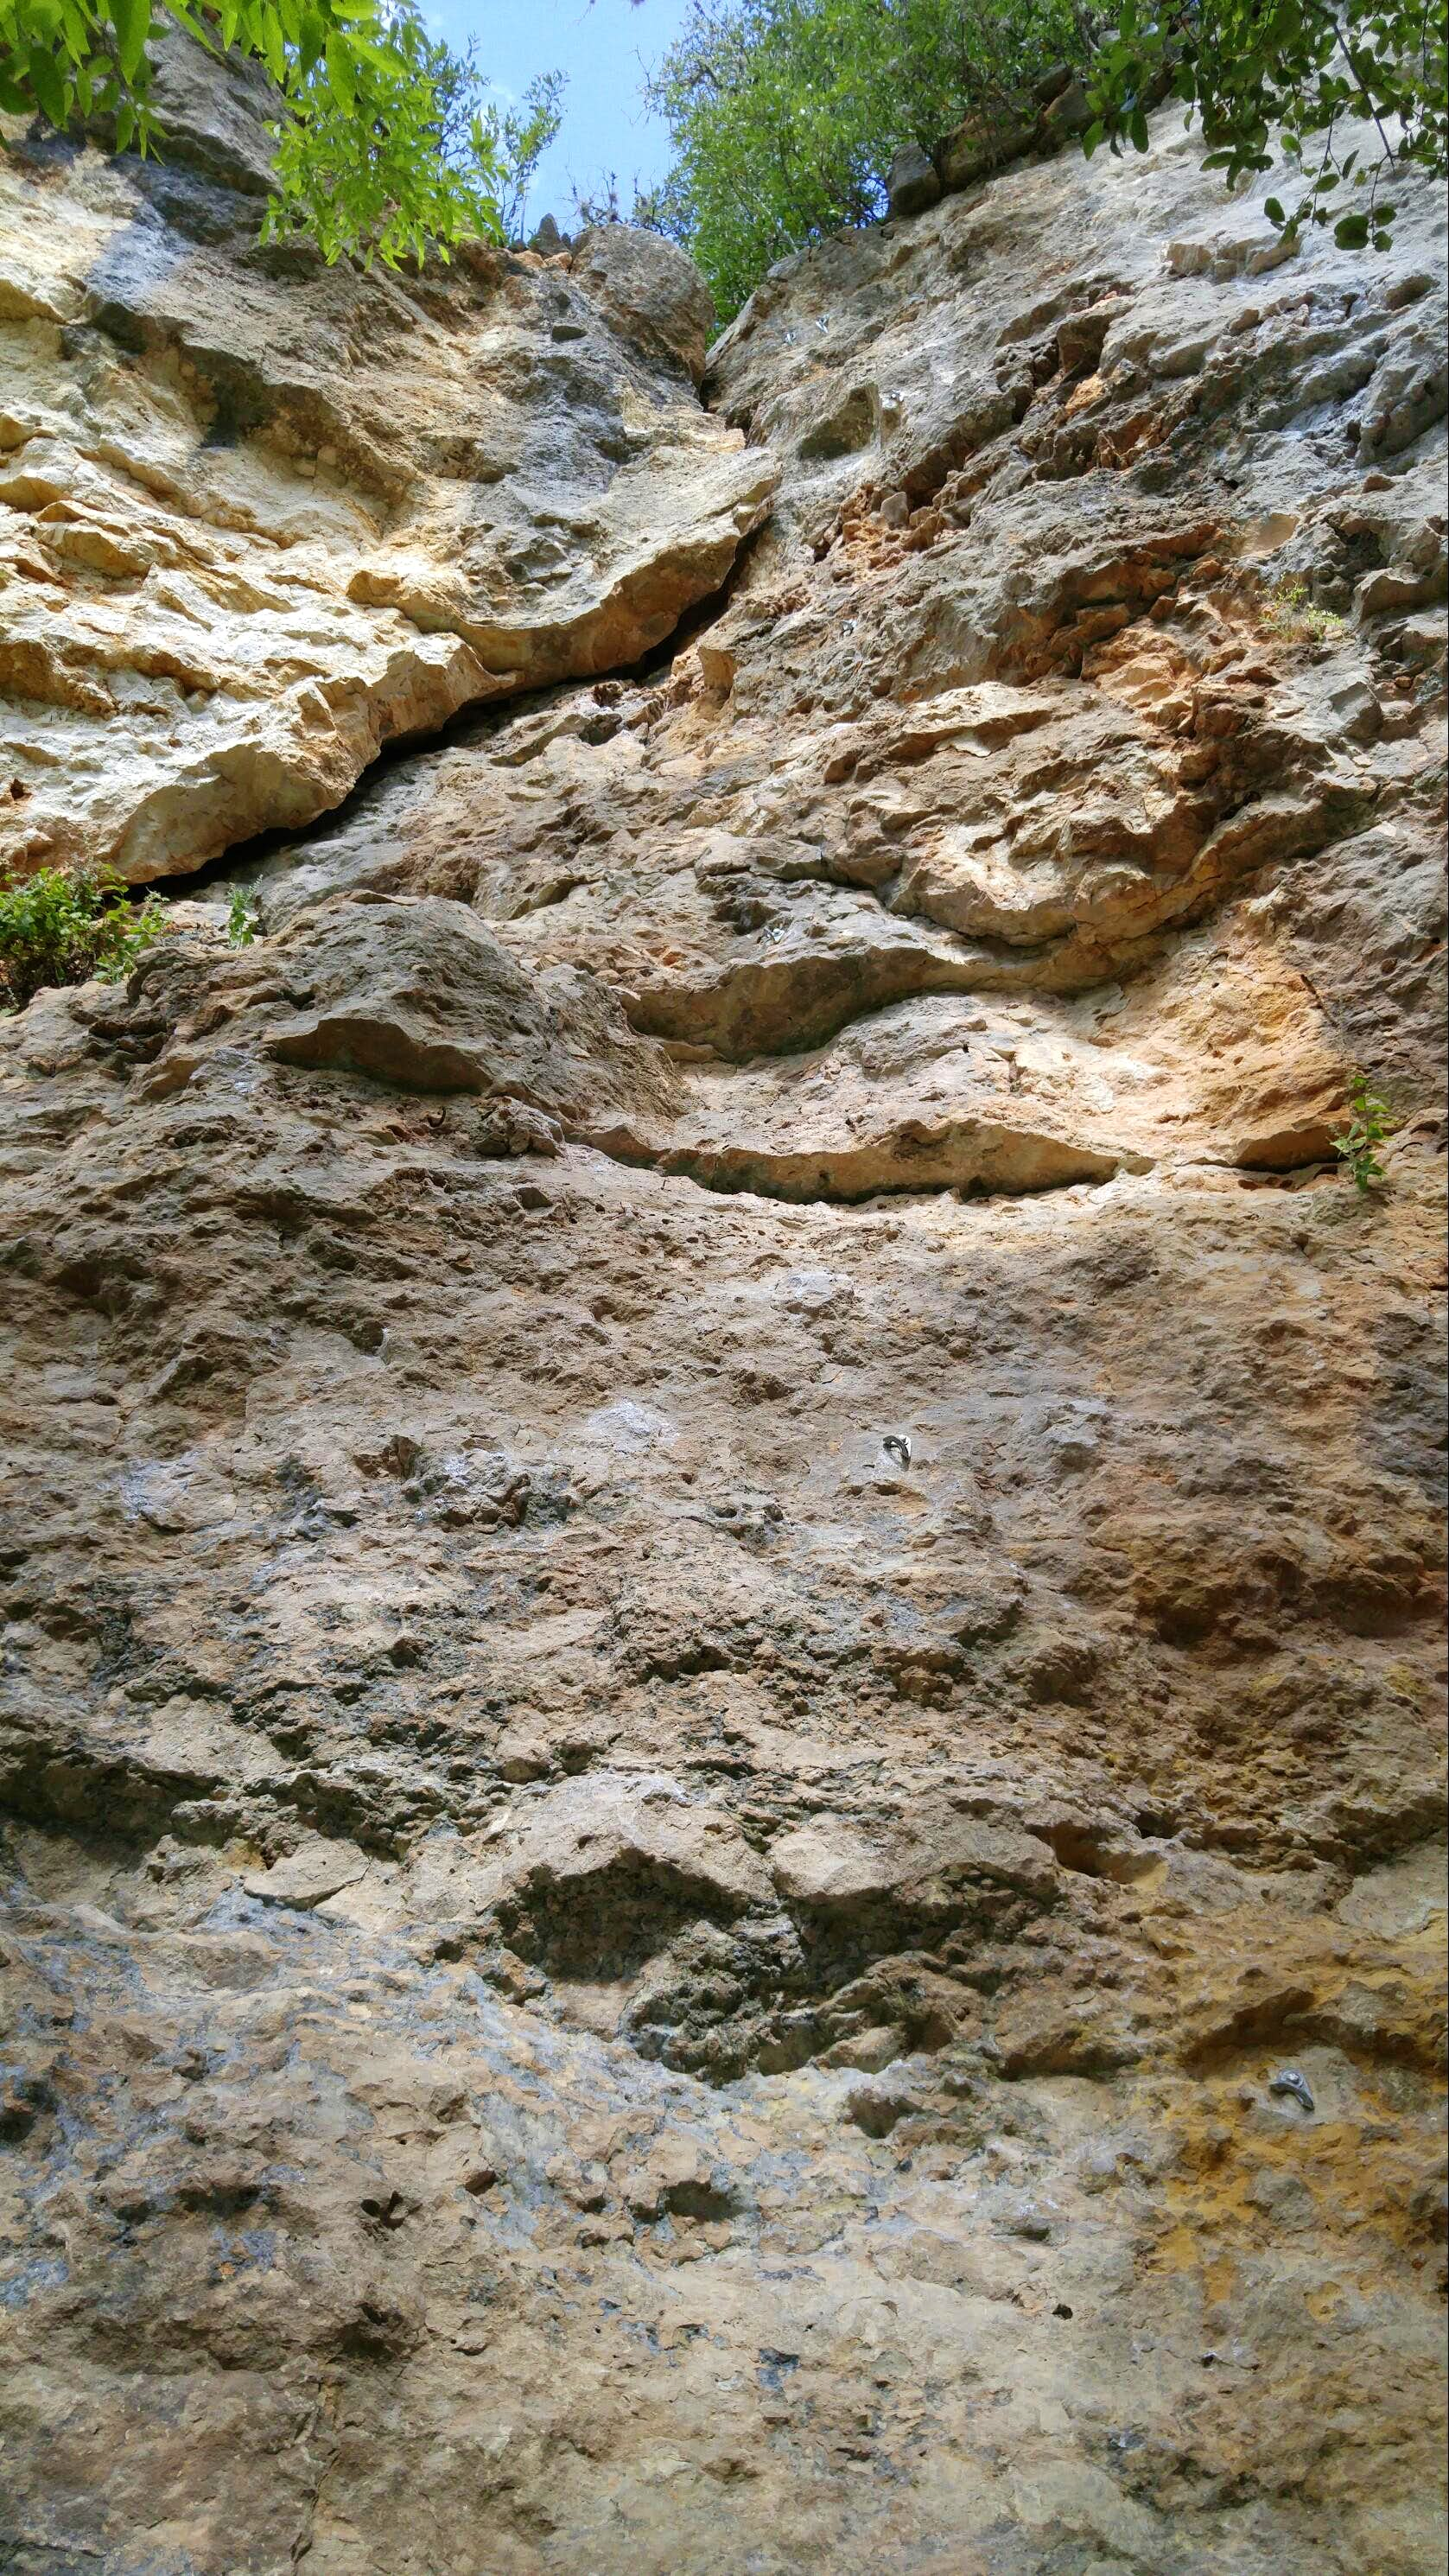 Rhetorick Wall (5.8-5.13a)